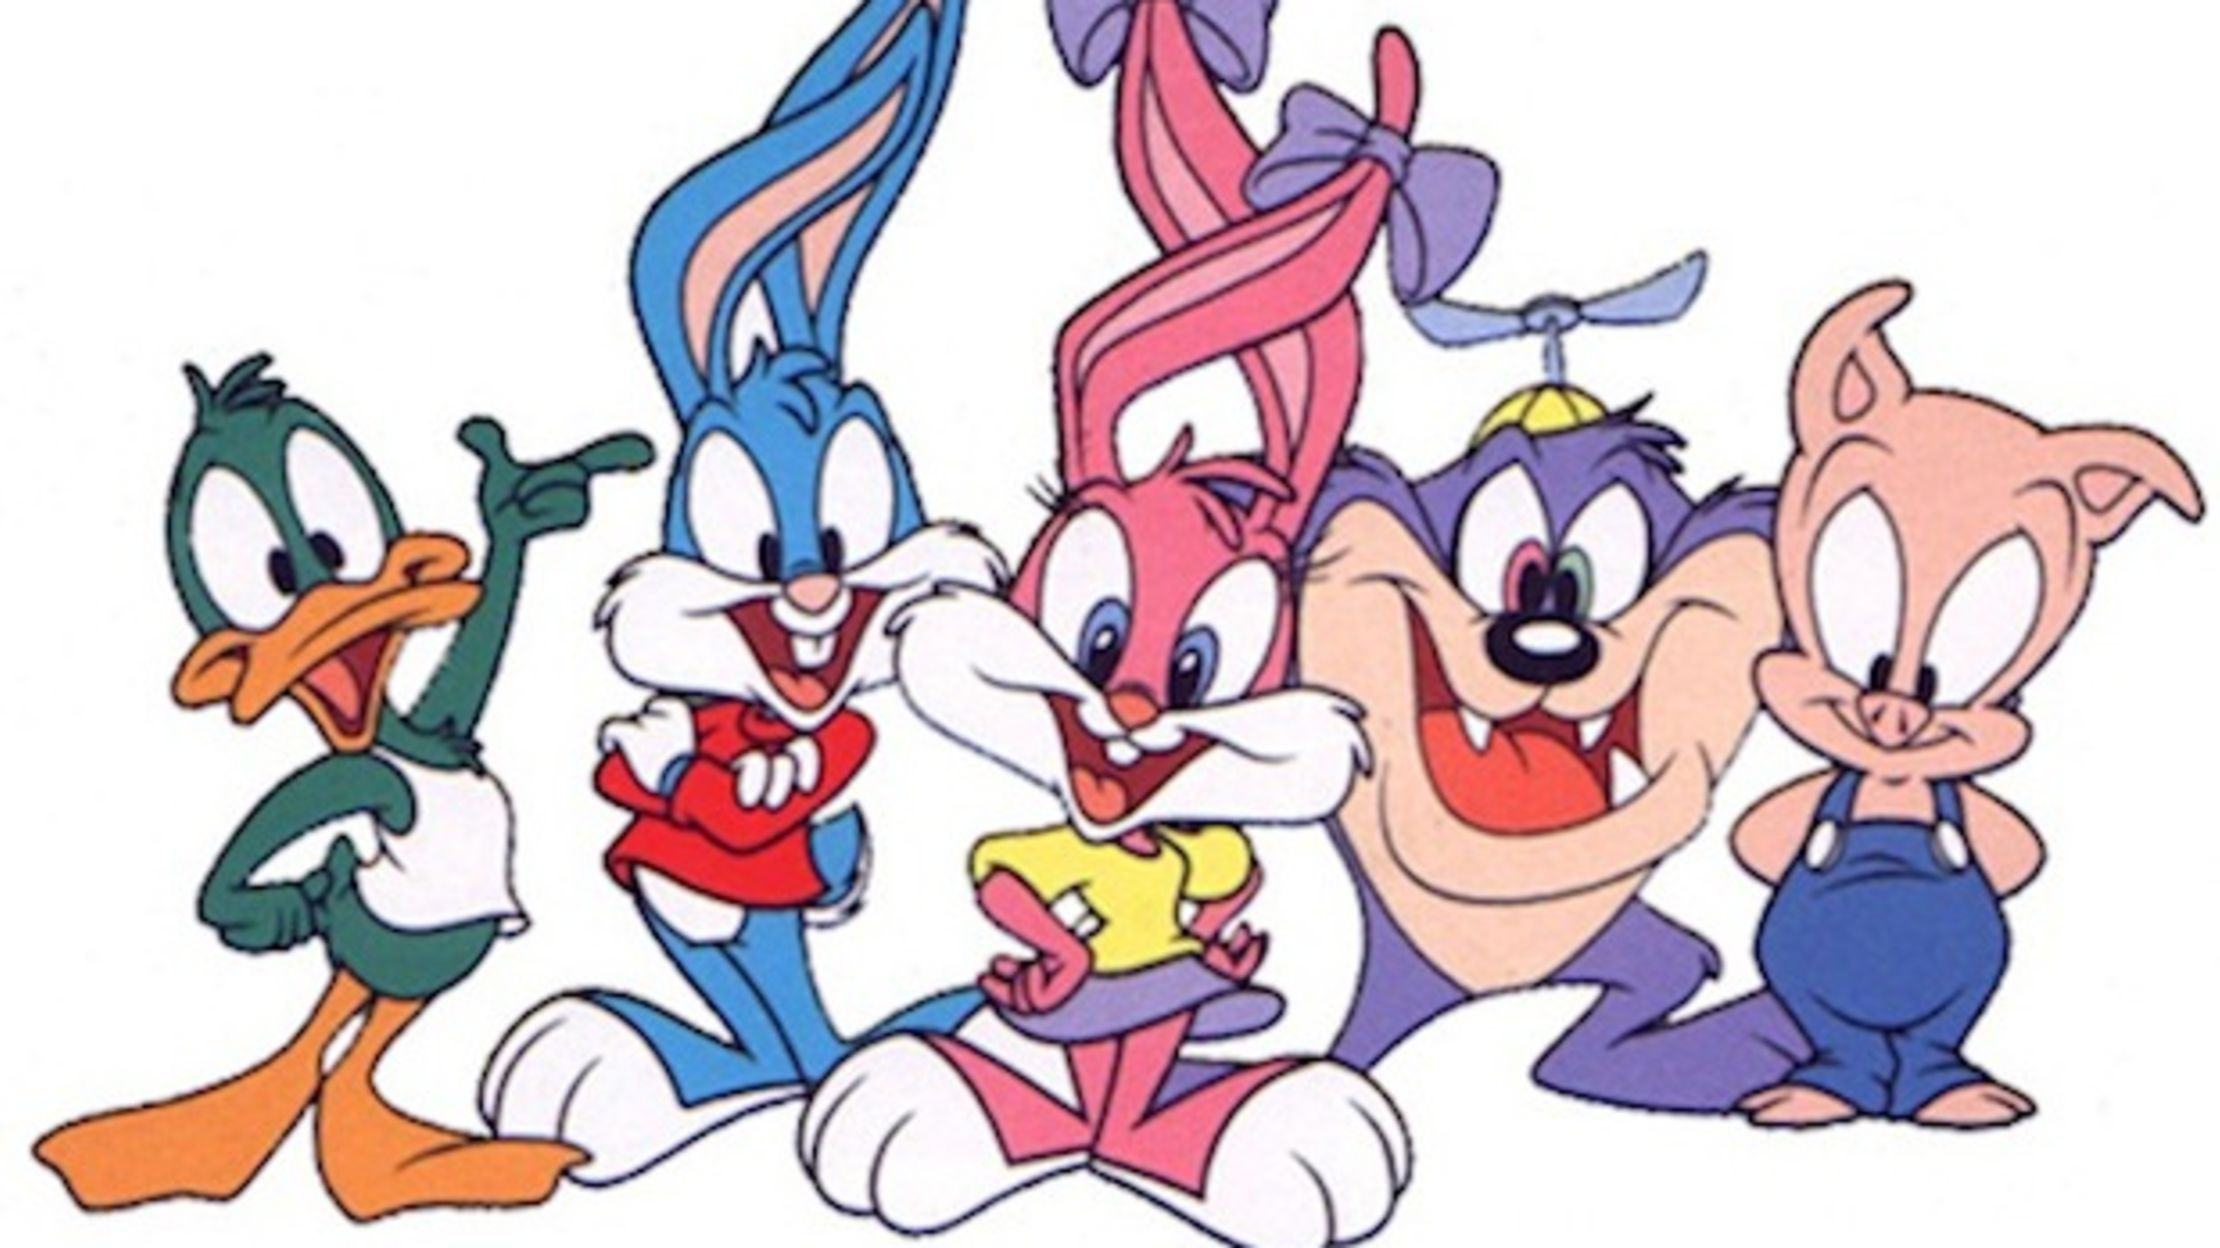 Animaniacs Elmyra Duff 15 looney facts about 'tiny toon adventures' | mental floss